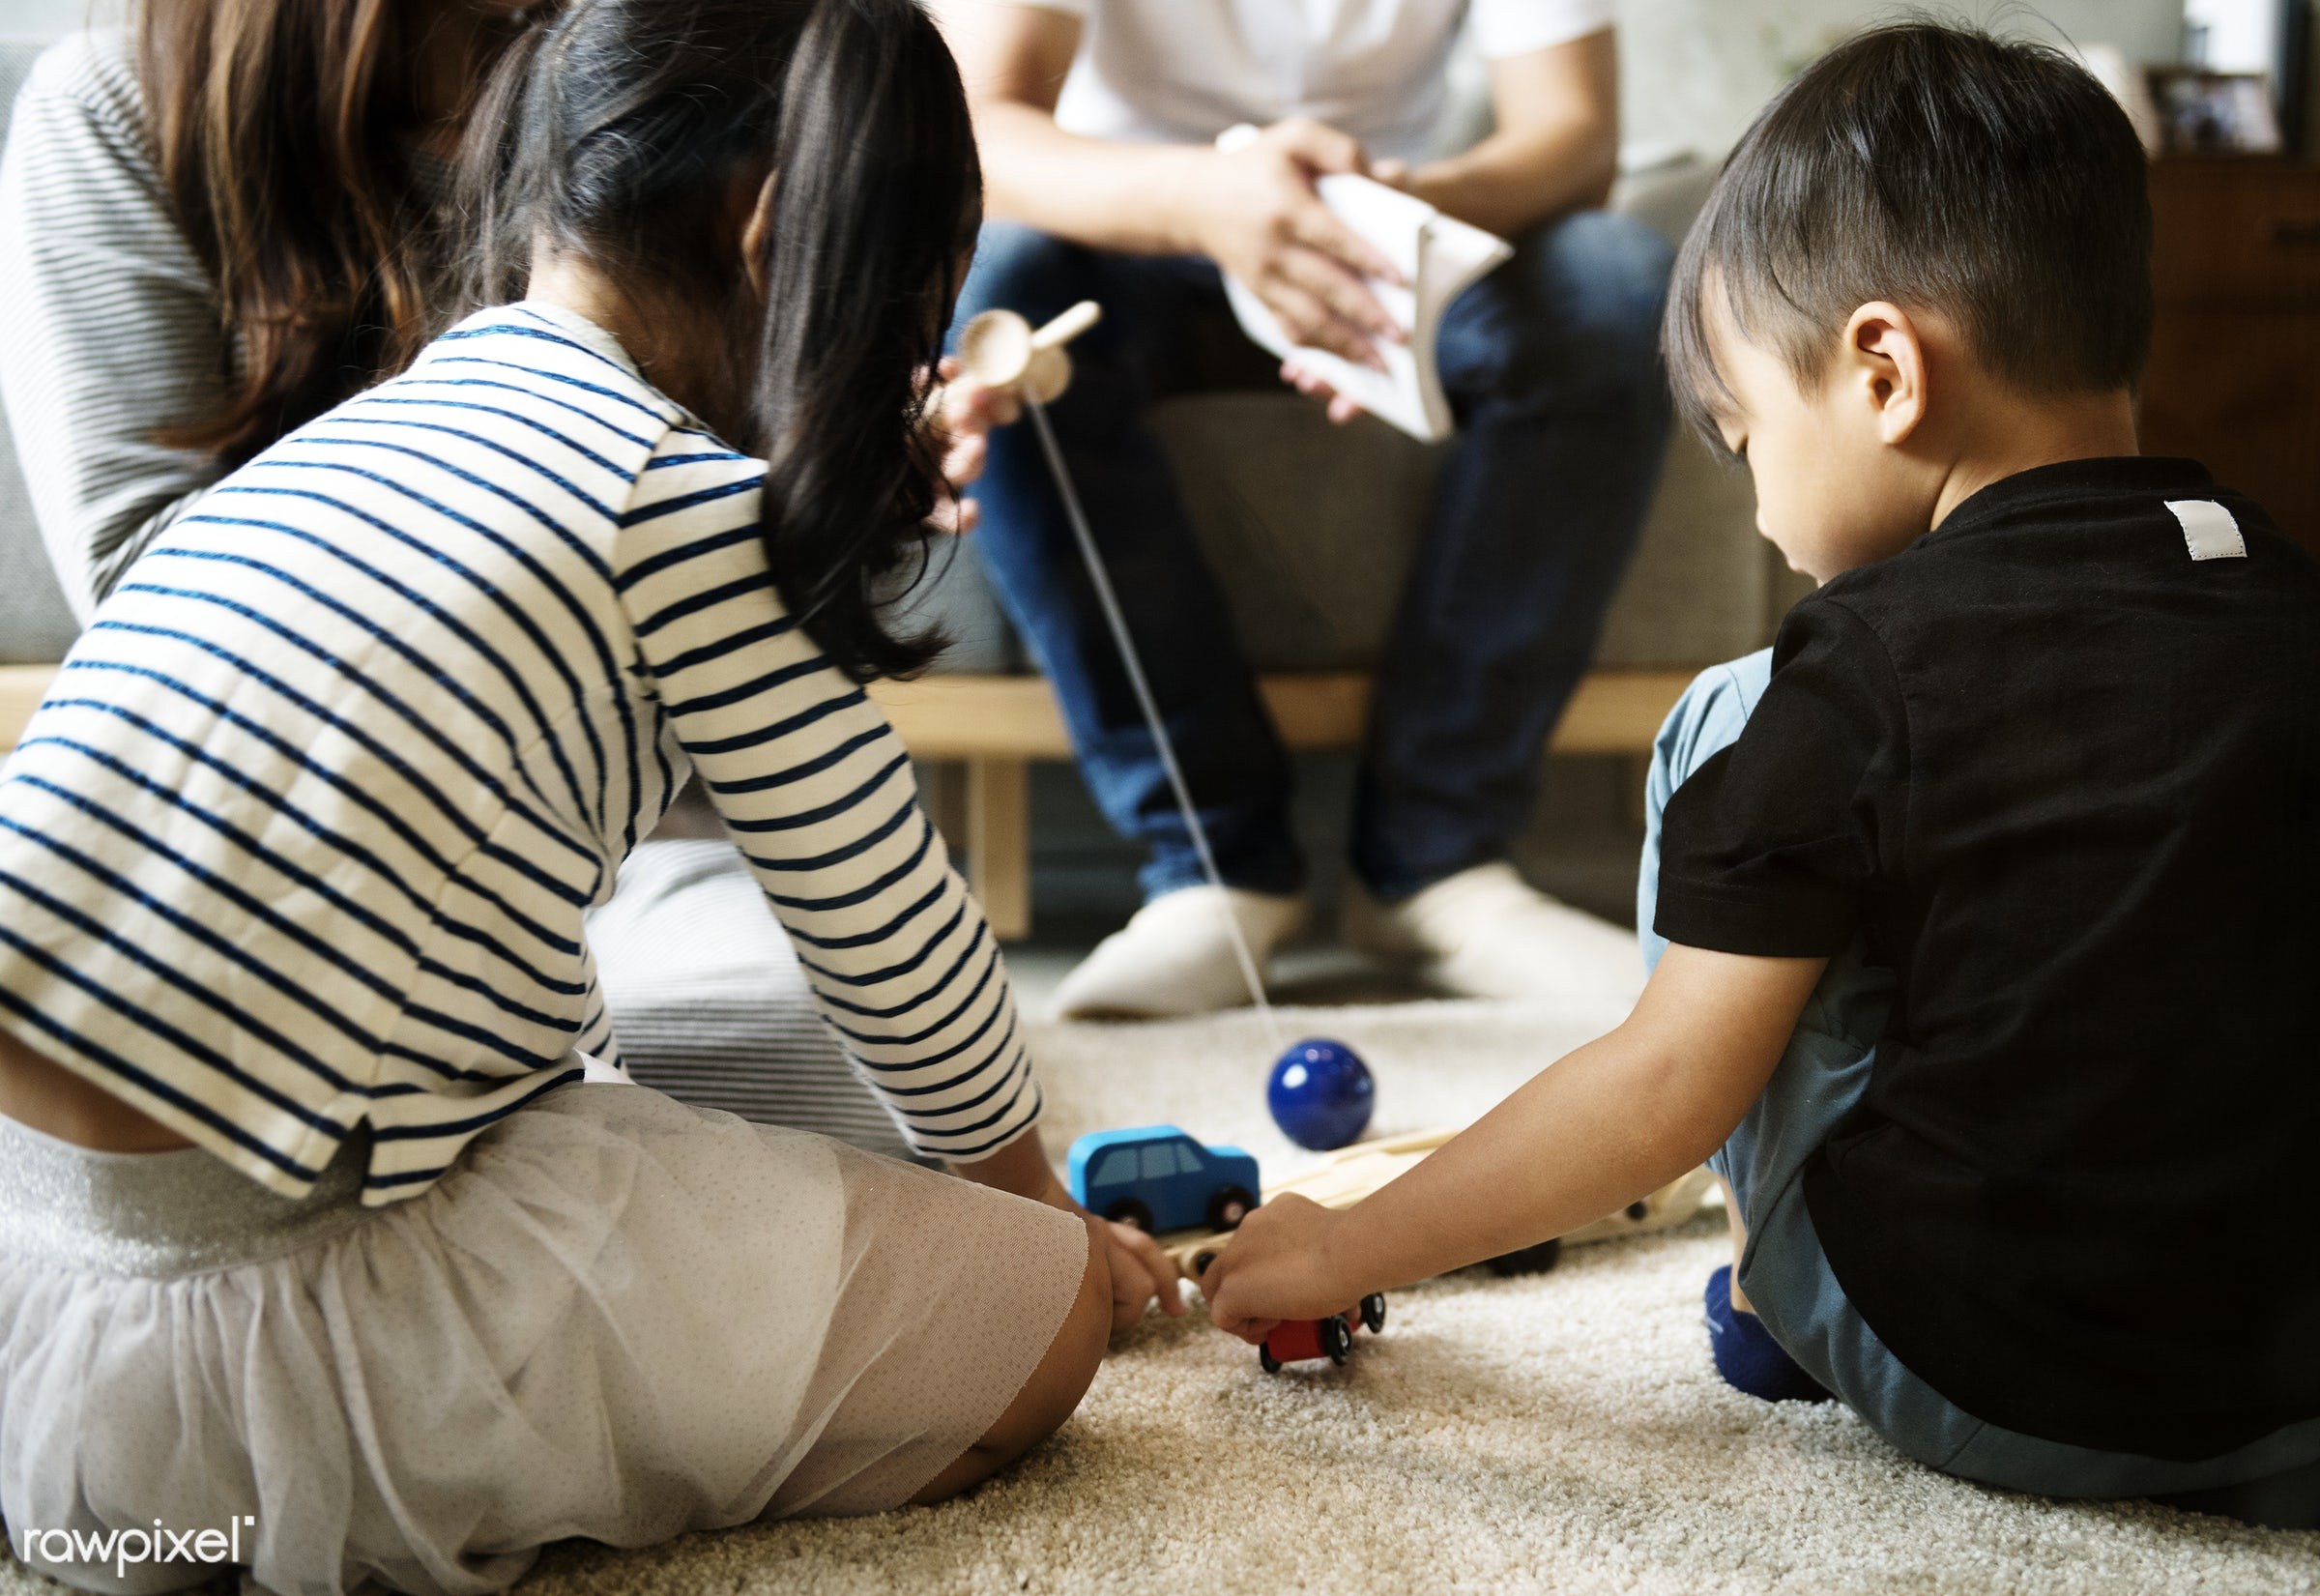 Japanese children playing - toy, adorable, asia, asian, brother, casual, childhood, children, family, hobby, innocence,...